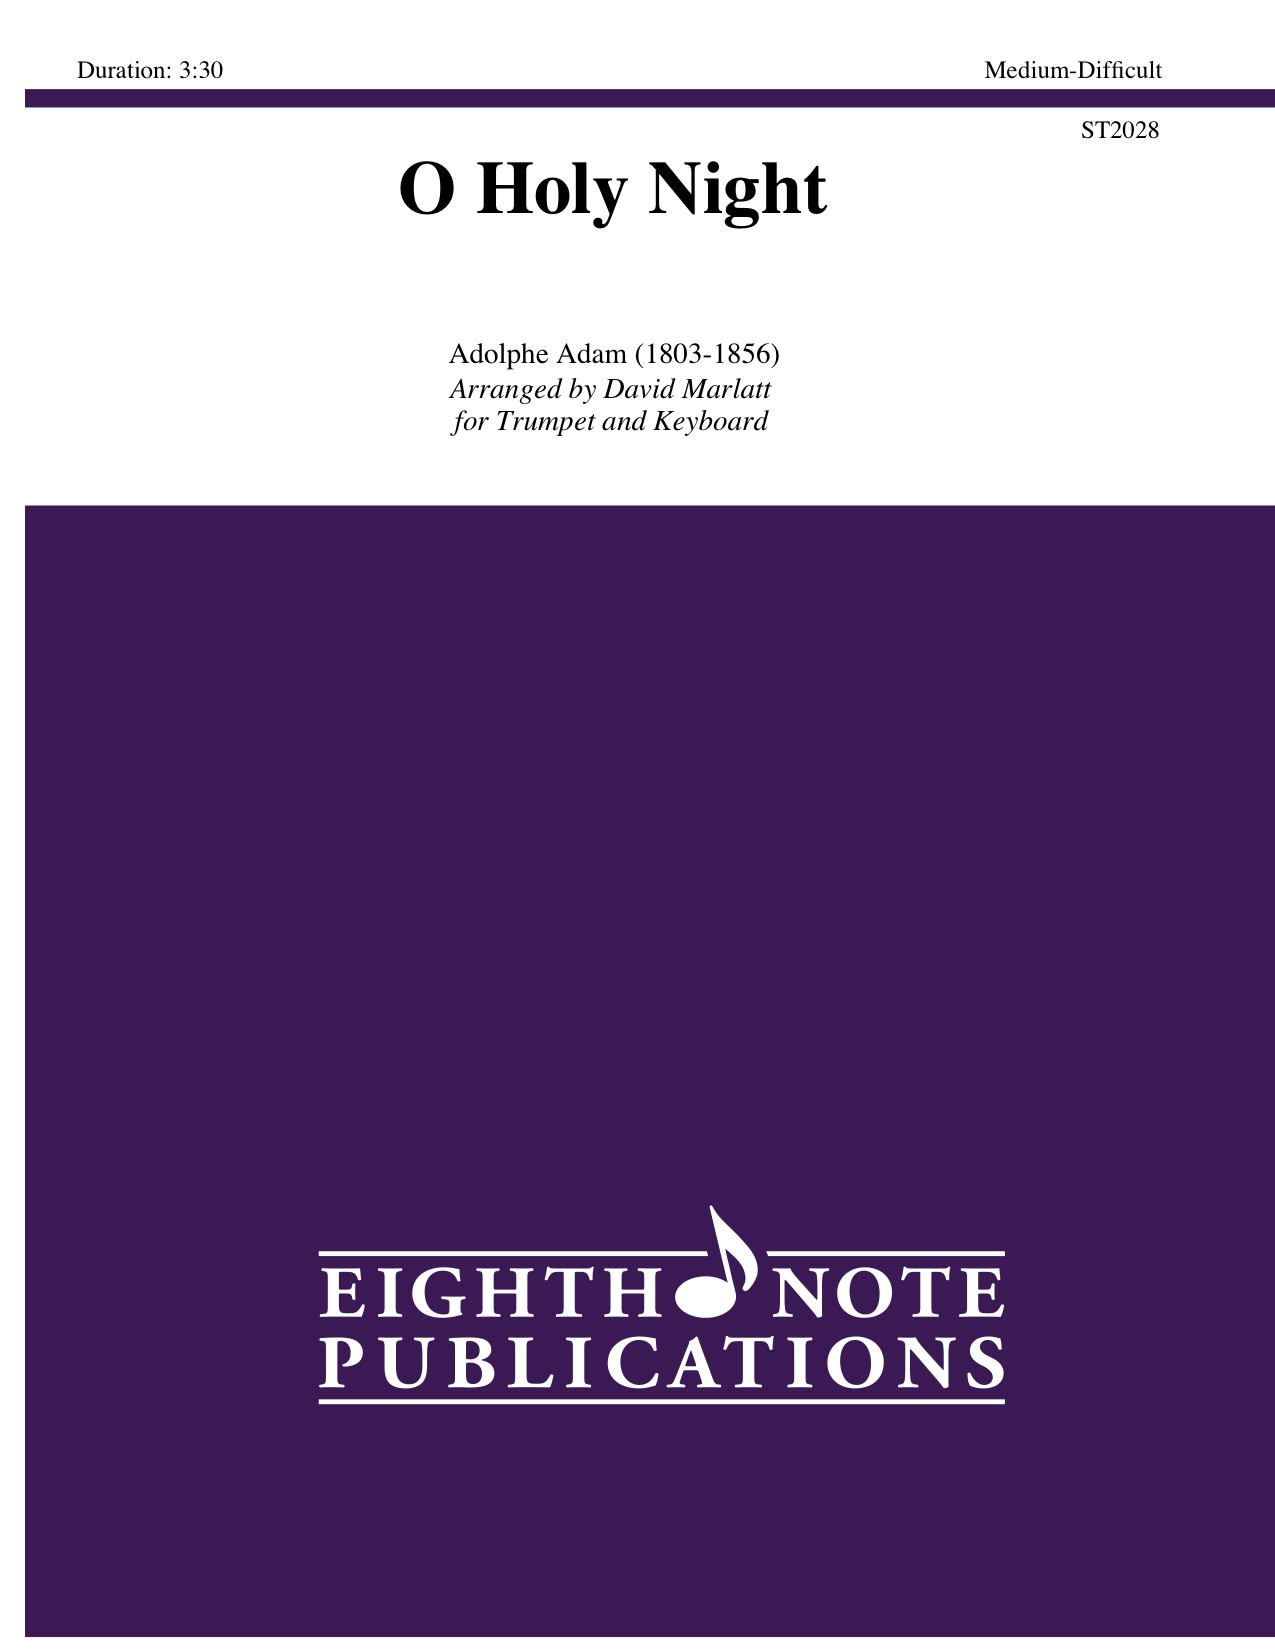 Eighth Note Publications - O Holy Night